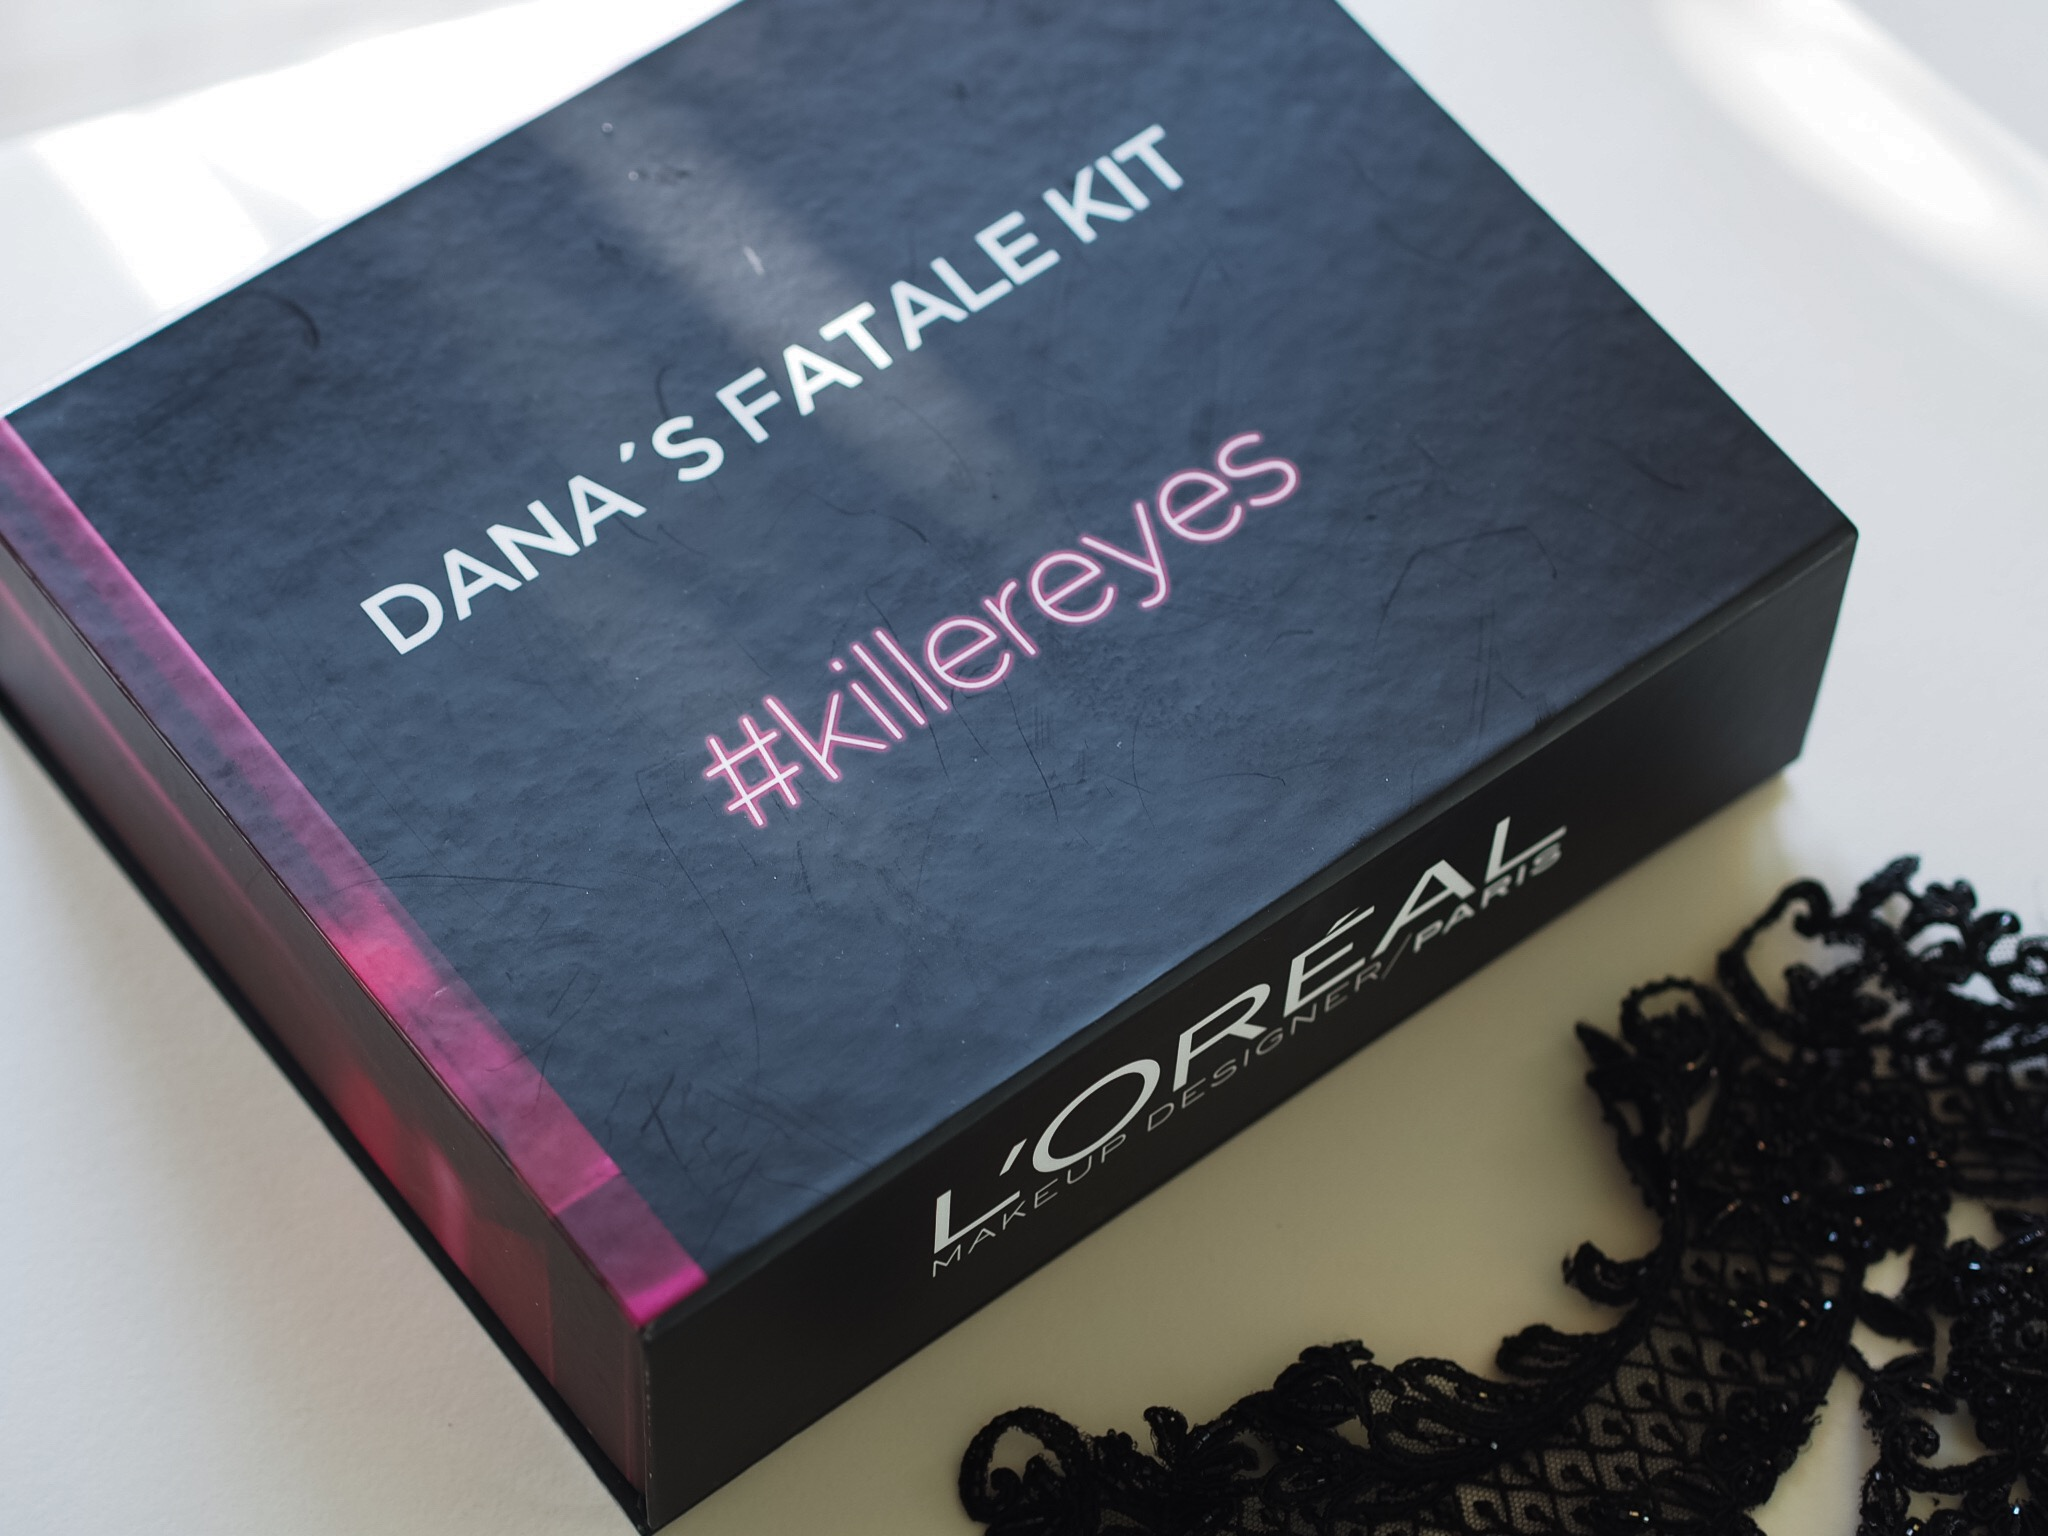 L'Oreal Paris xIvy Says Million Lashes Fatale Mascara Campaign